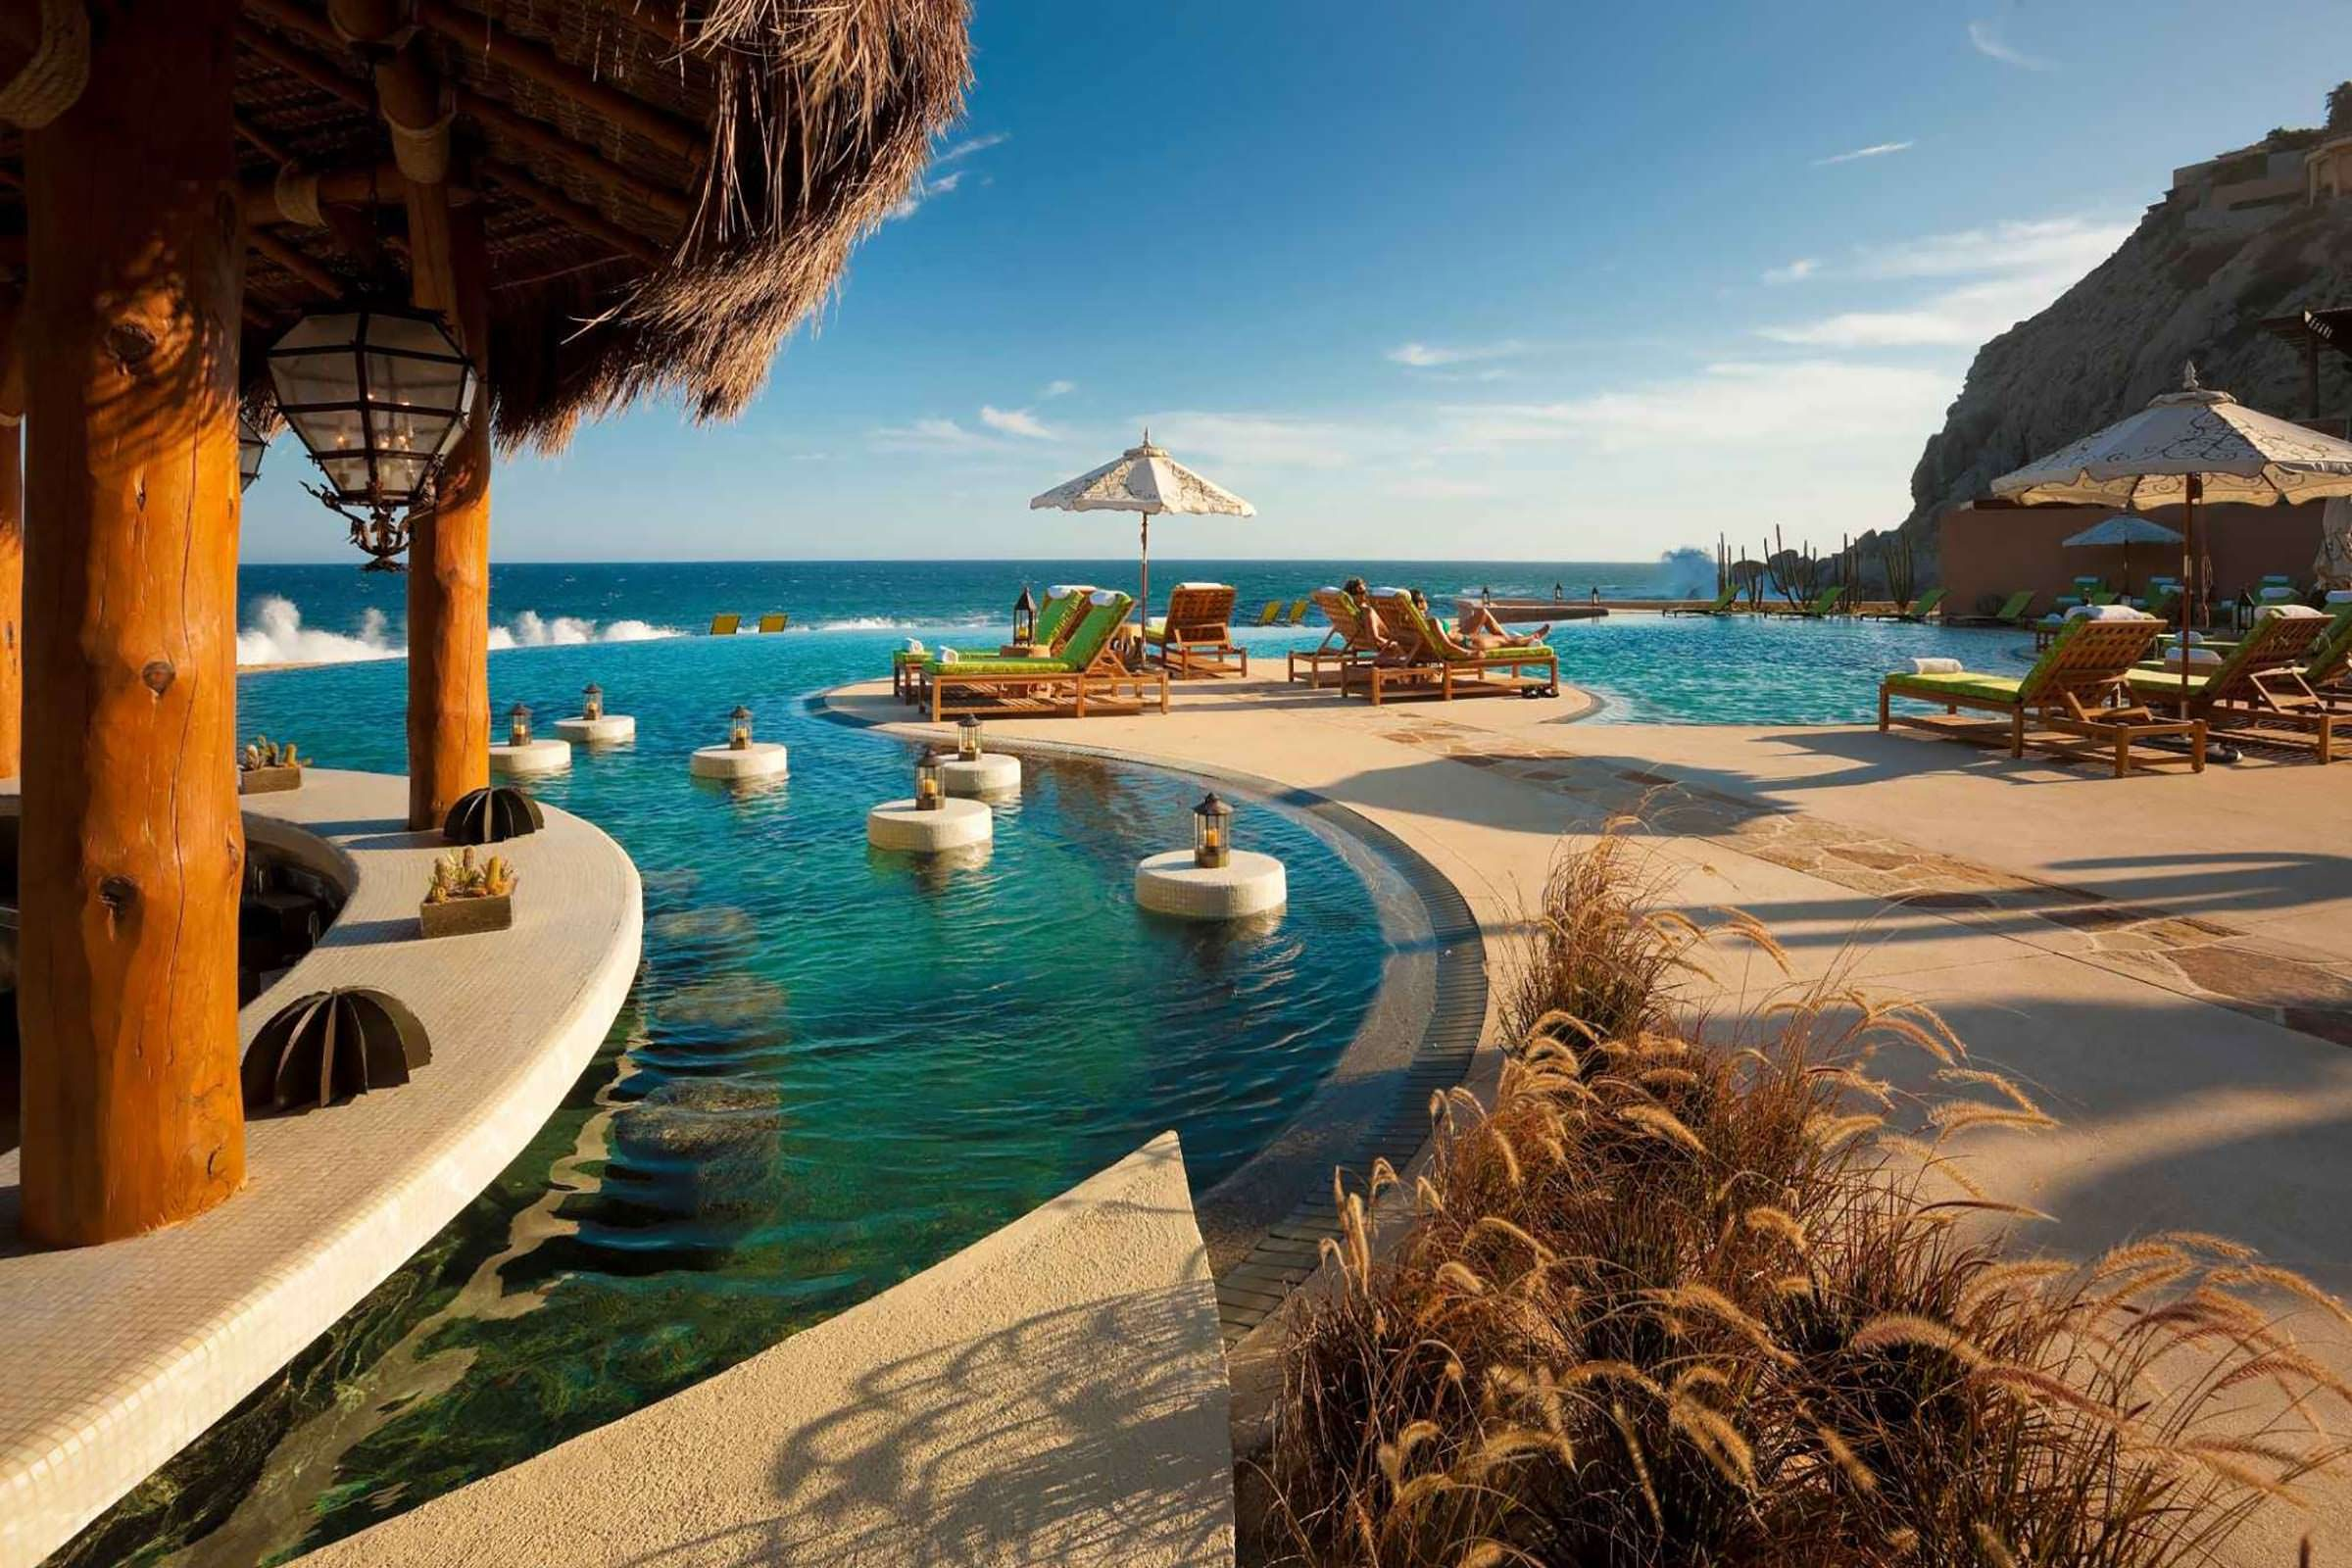 The Most Beautiful Infinity Pools in the World